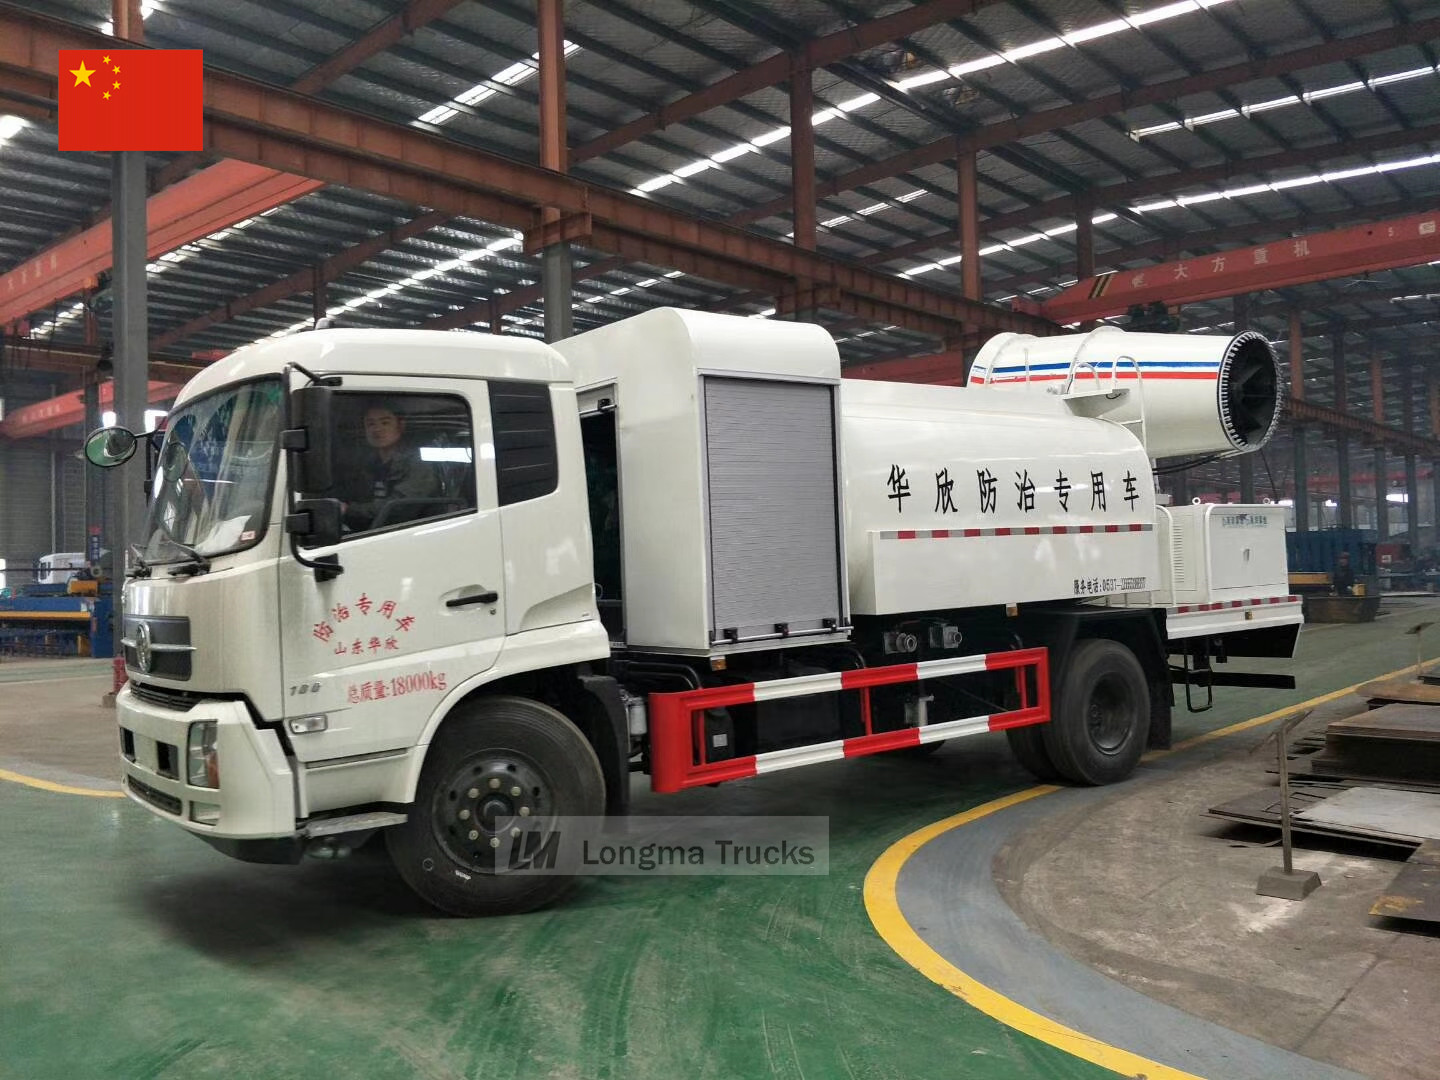 howo <a target='_blank' href='http://www.longmatruck.com/dust-suppression-truck'>dust suppression truck</a> picture in our factory